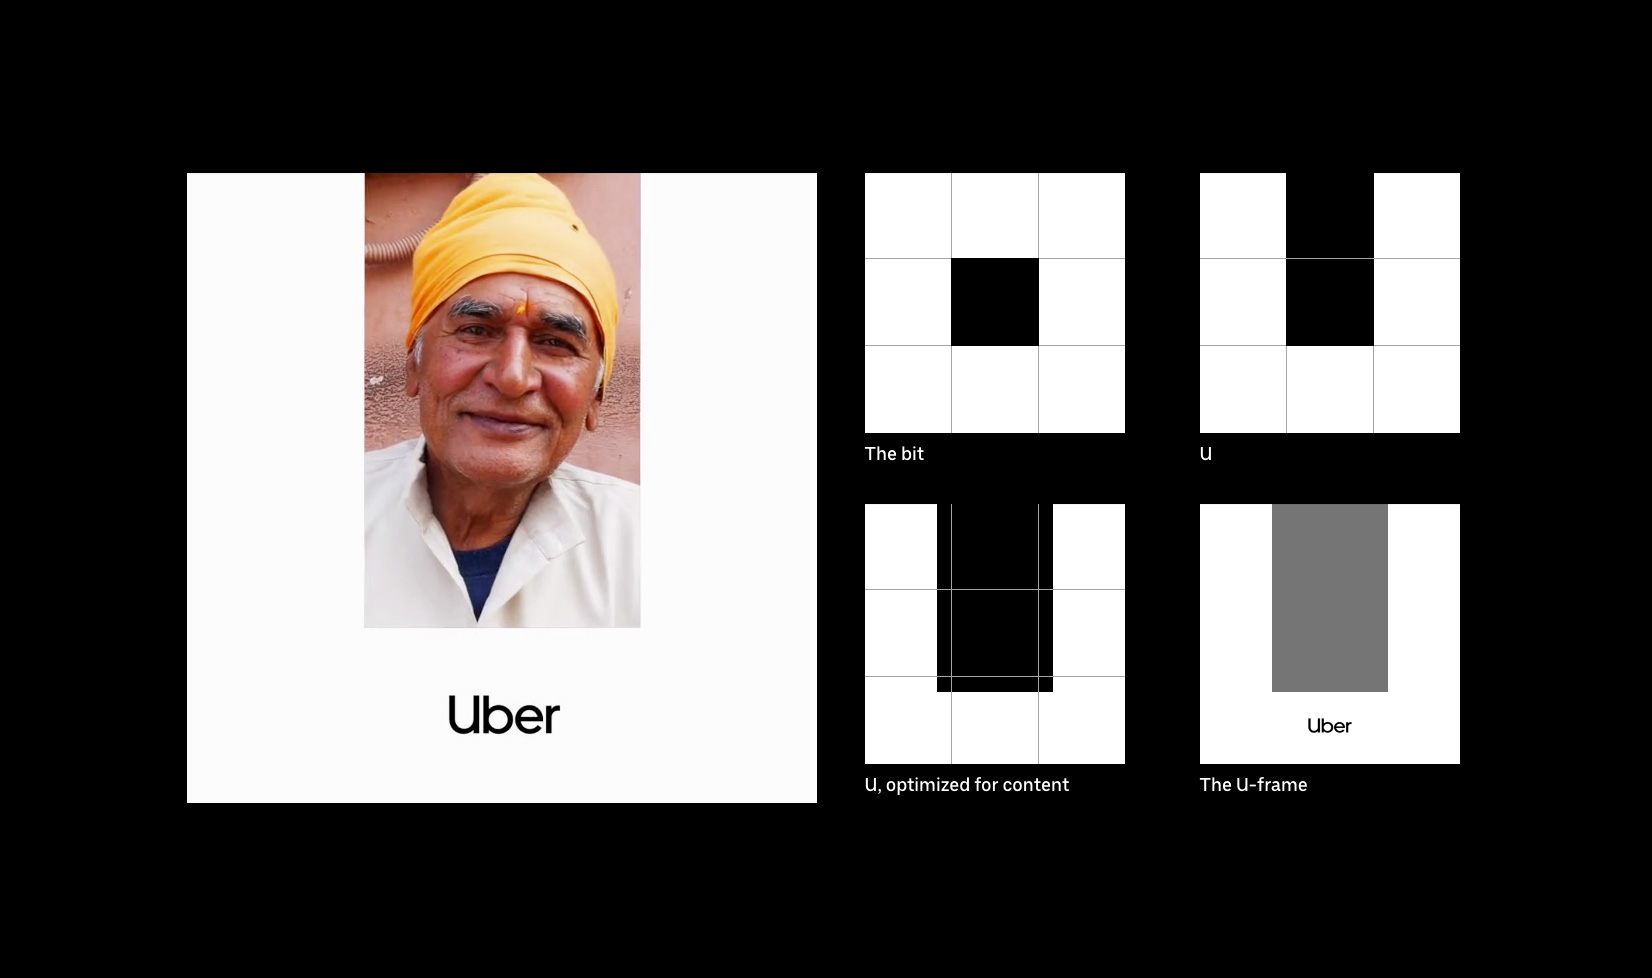 New Logo and Identity for Uber by Wolff Olins and In-house